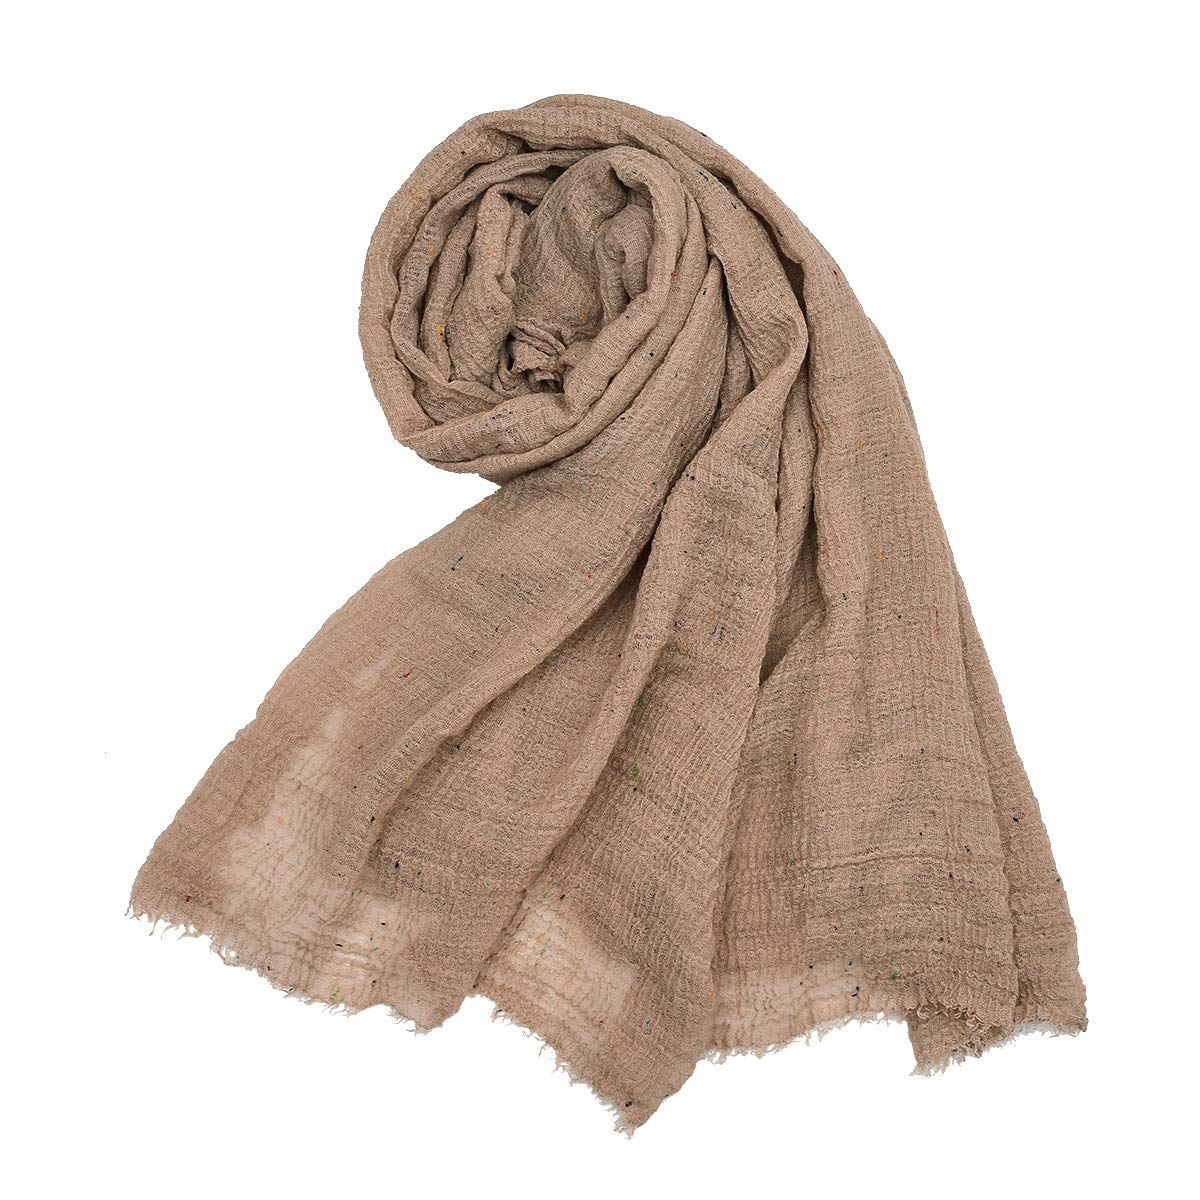 Khaki Sunm Boutique Casual Solid Soft Lightweight Cotton Hemp Scarf Pashmina for Women Lady